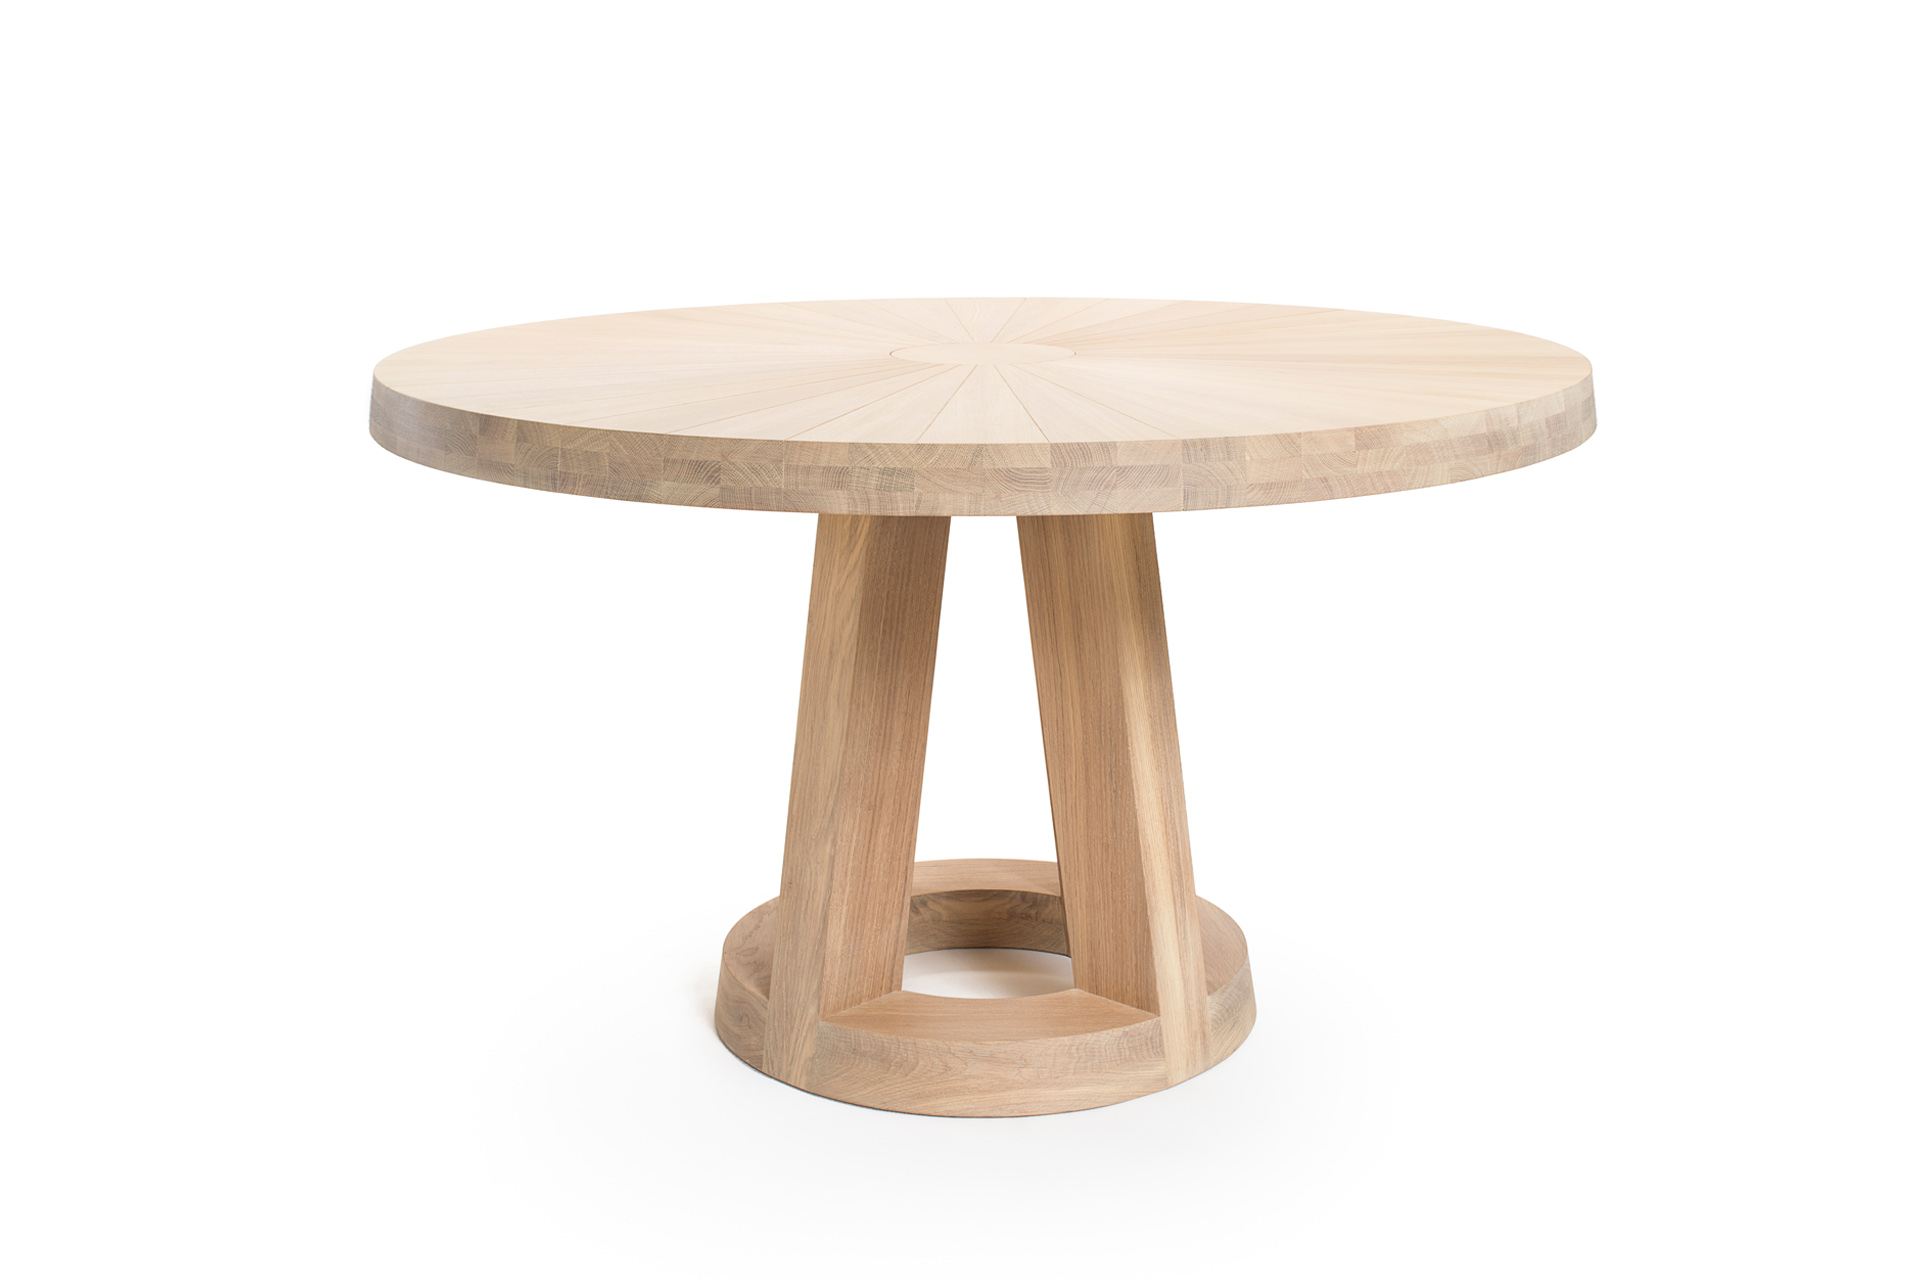 Table Ronde 130 Cm.Solid Round Design Table L Remy Meijers L Odesi Your Dutch Design